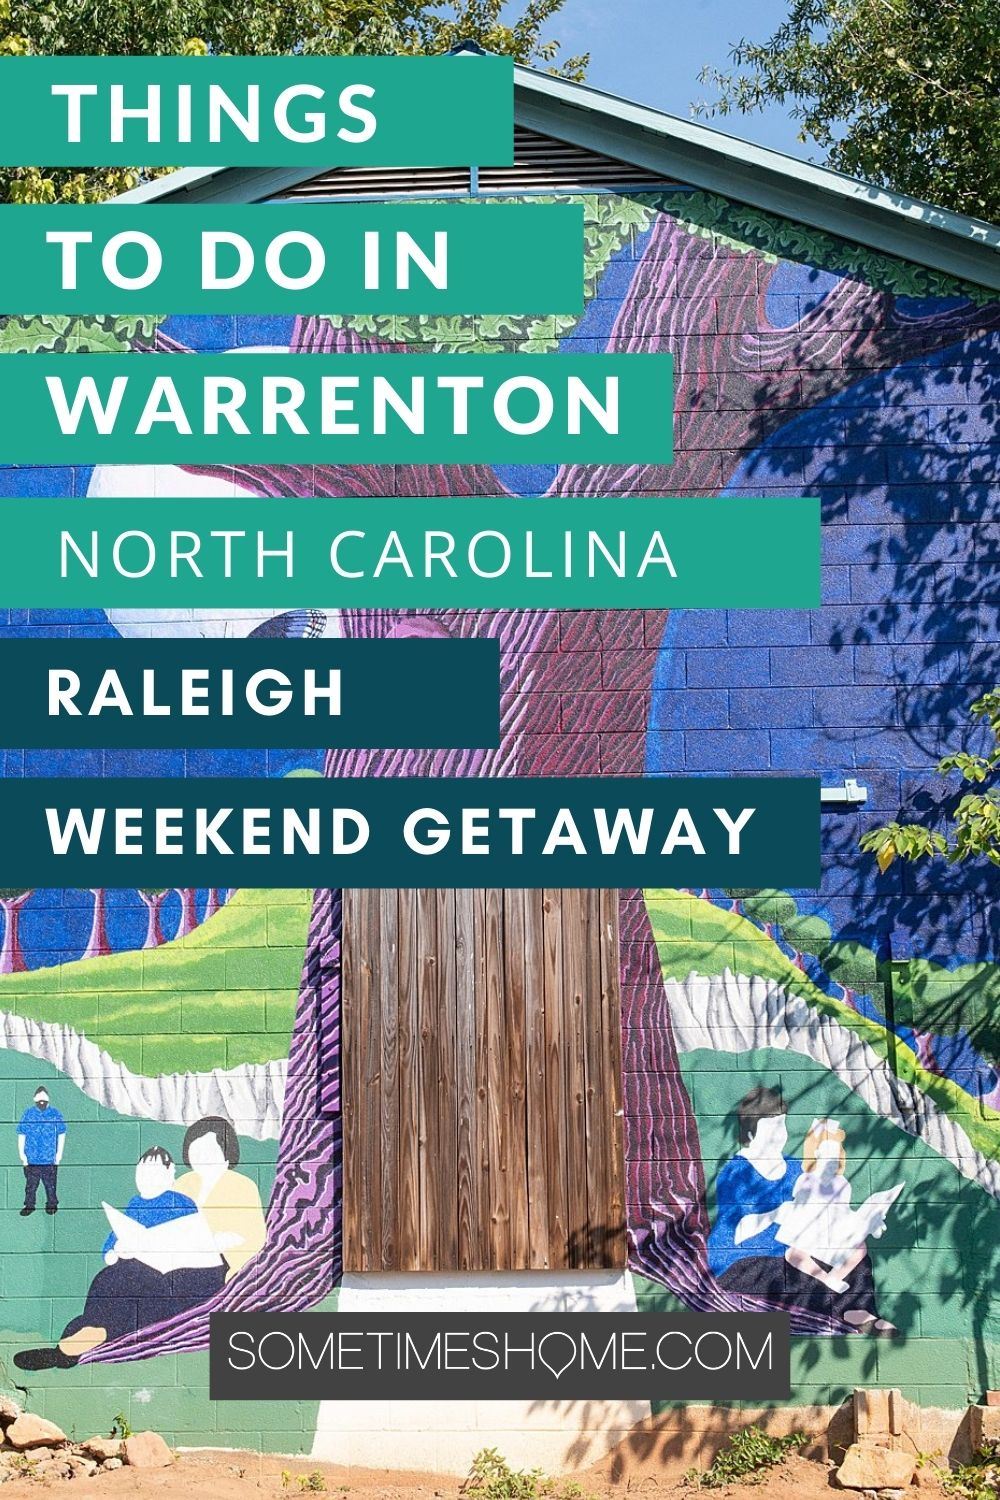 Things to Do in Warrenton, North Carolina, Raleigh Weekend Getaway Pinterest image with a painted mural of a tree with a blue sky behind it.